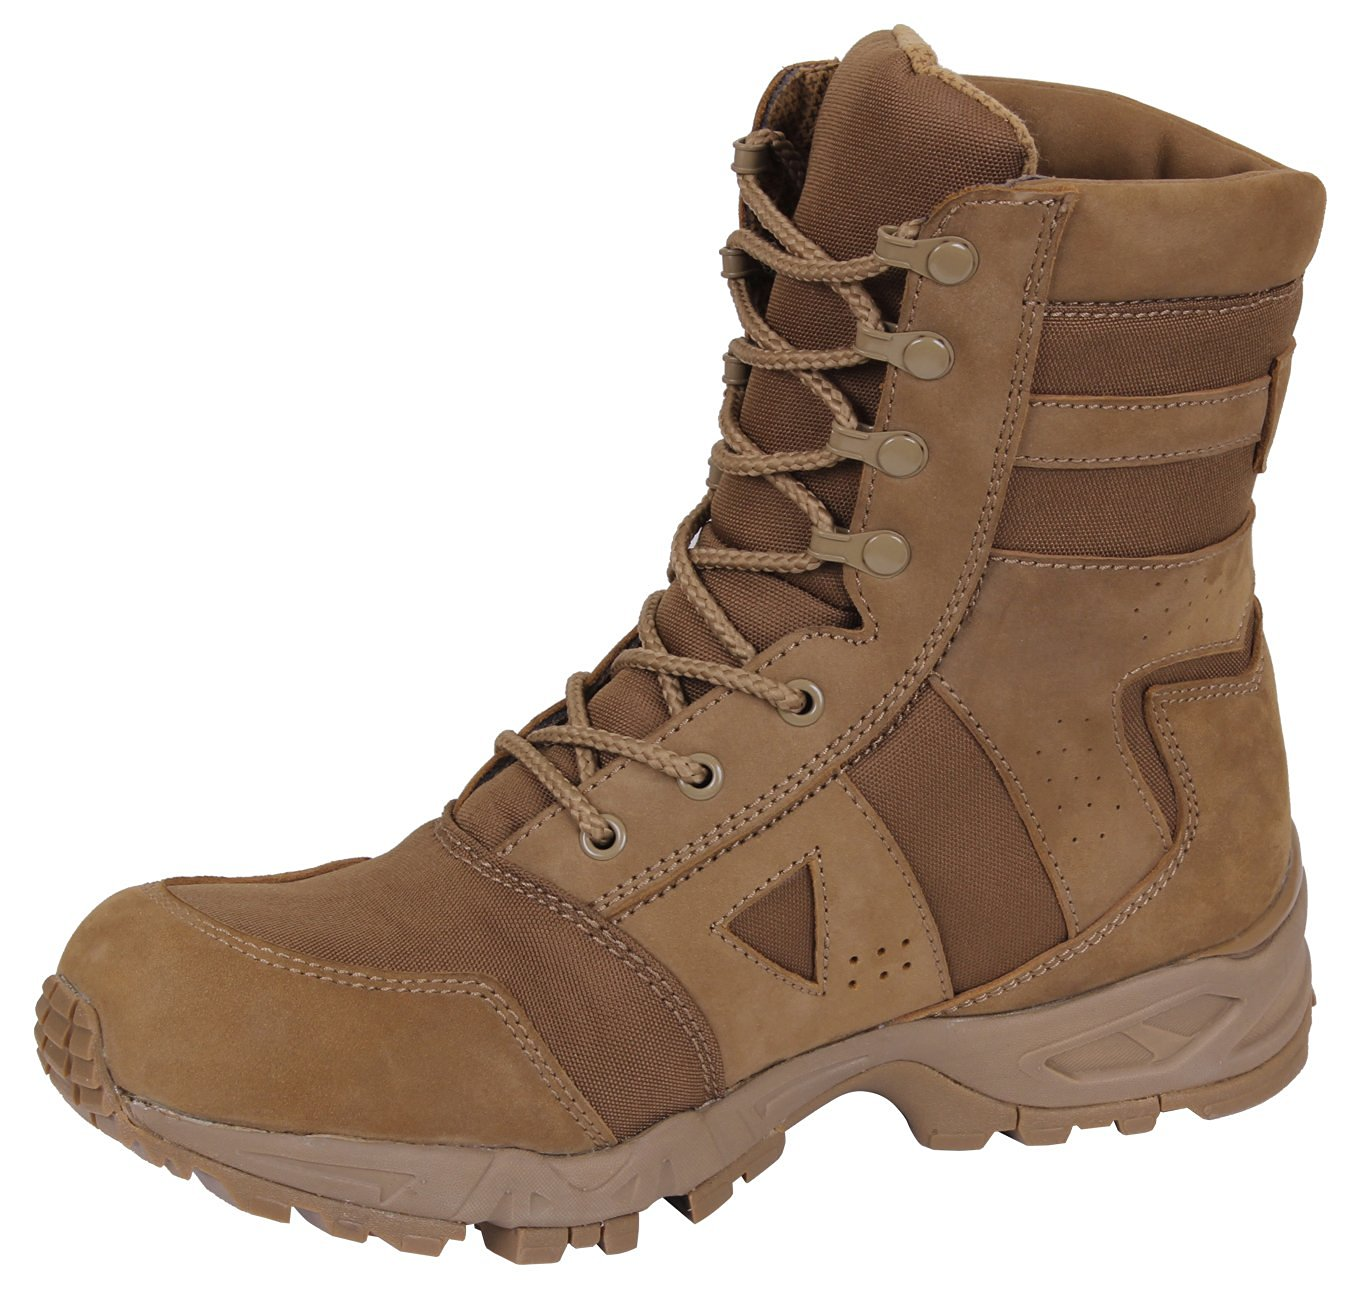 Best Military Boots for Flat Feet